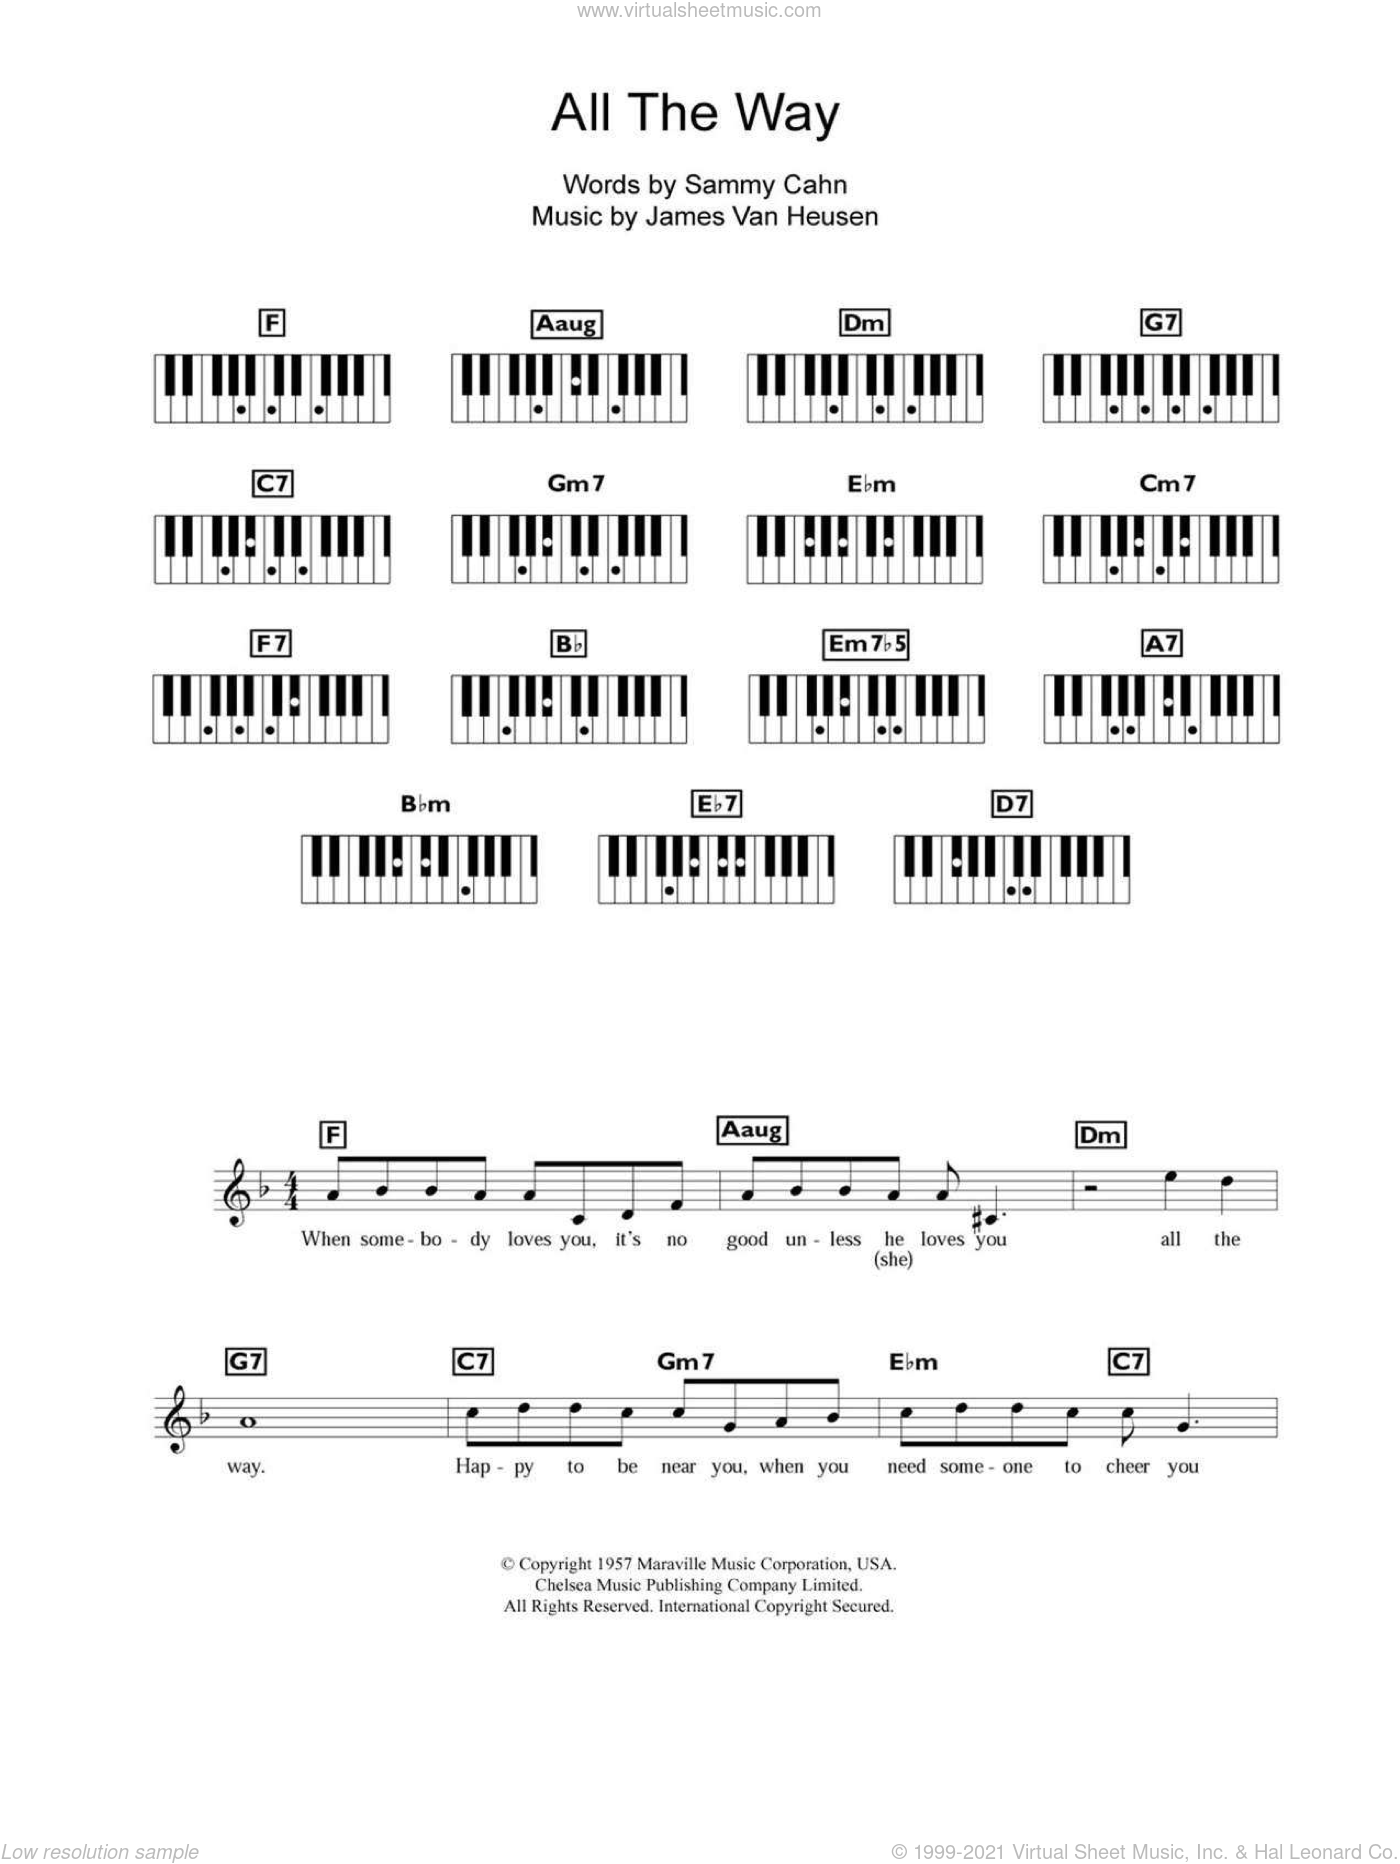 All The Way sheet music for piano solo (chords, lyrics, melody) by Sammy Cahn, Frank Sinatra and Jimmy van Heusen